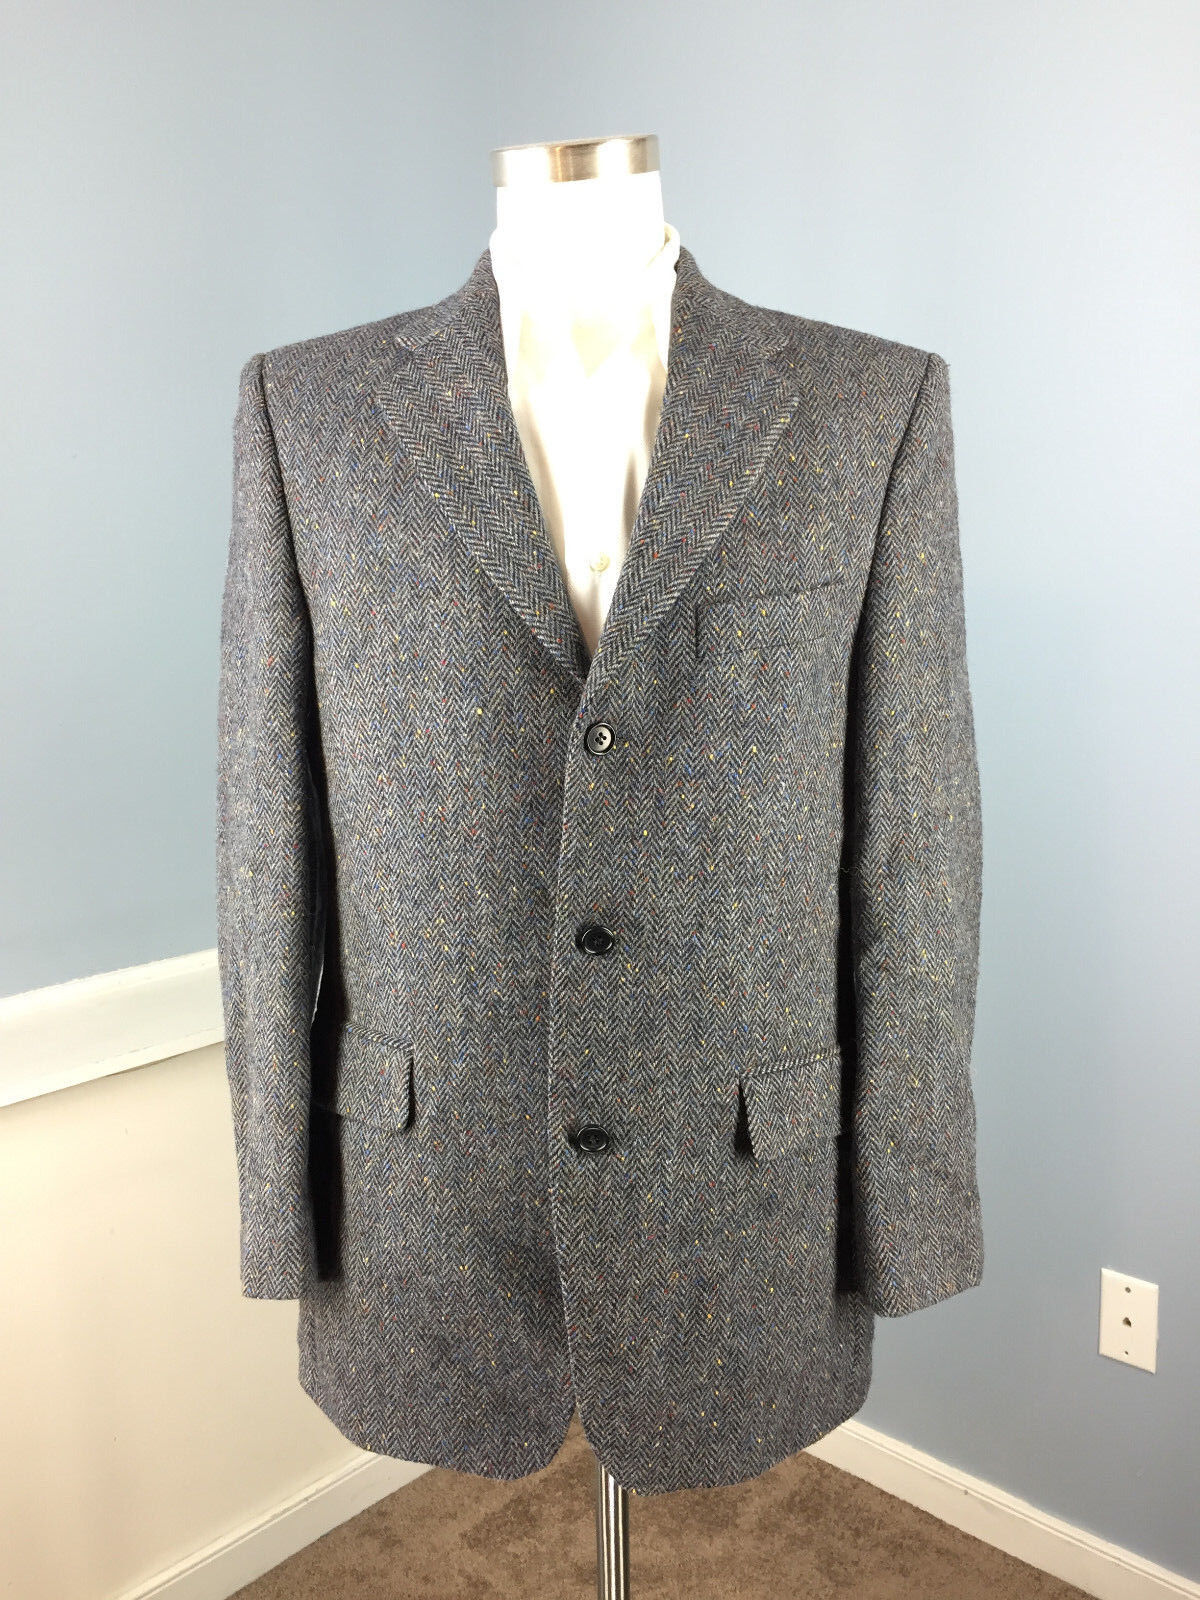 Magee Donegal tweed Sport Coat Blau 40 R Hand Woven 100% Wool Two Button EUC